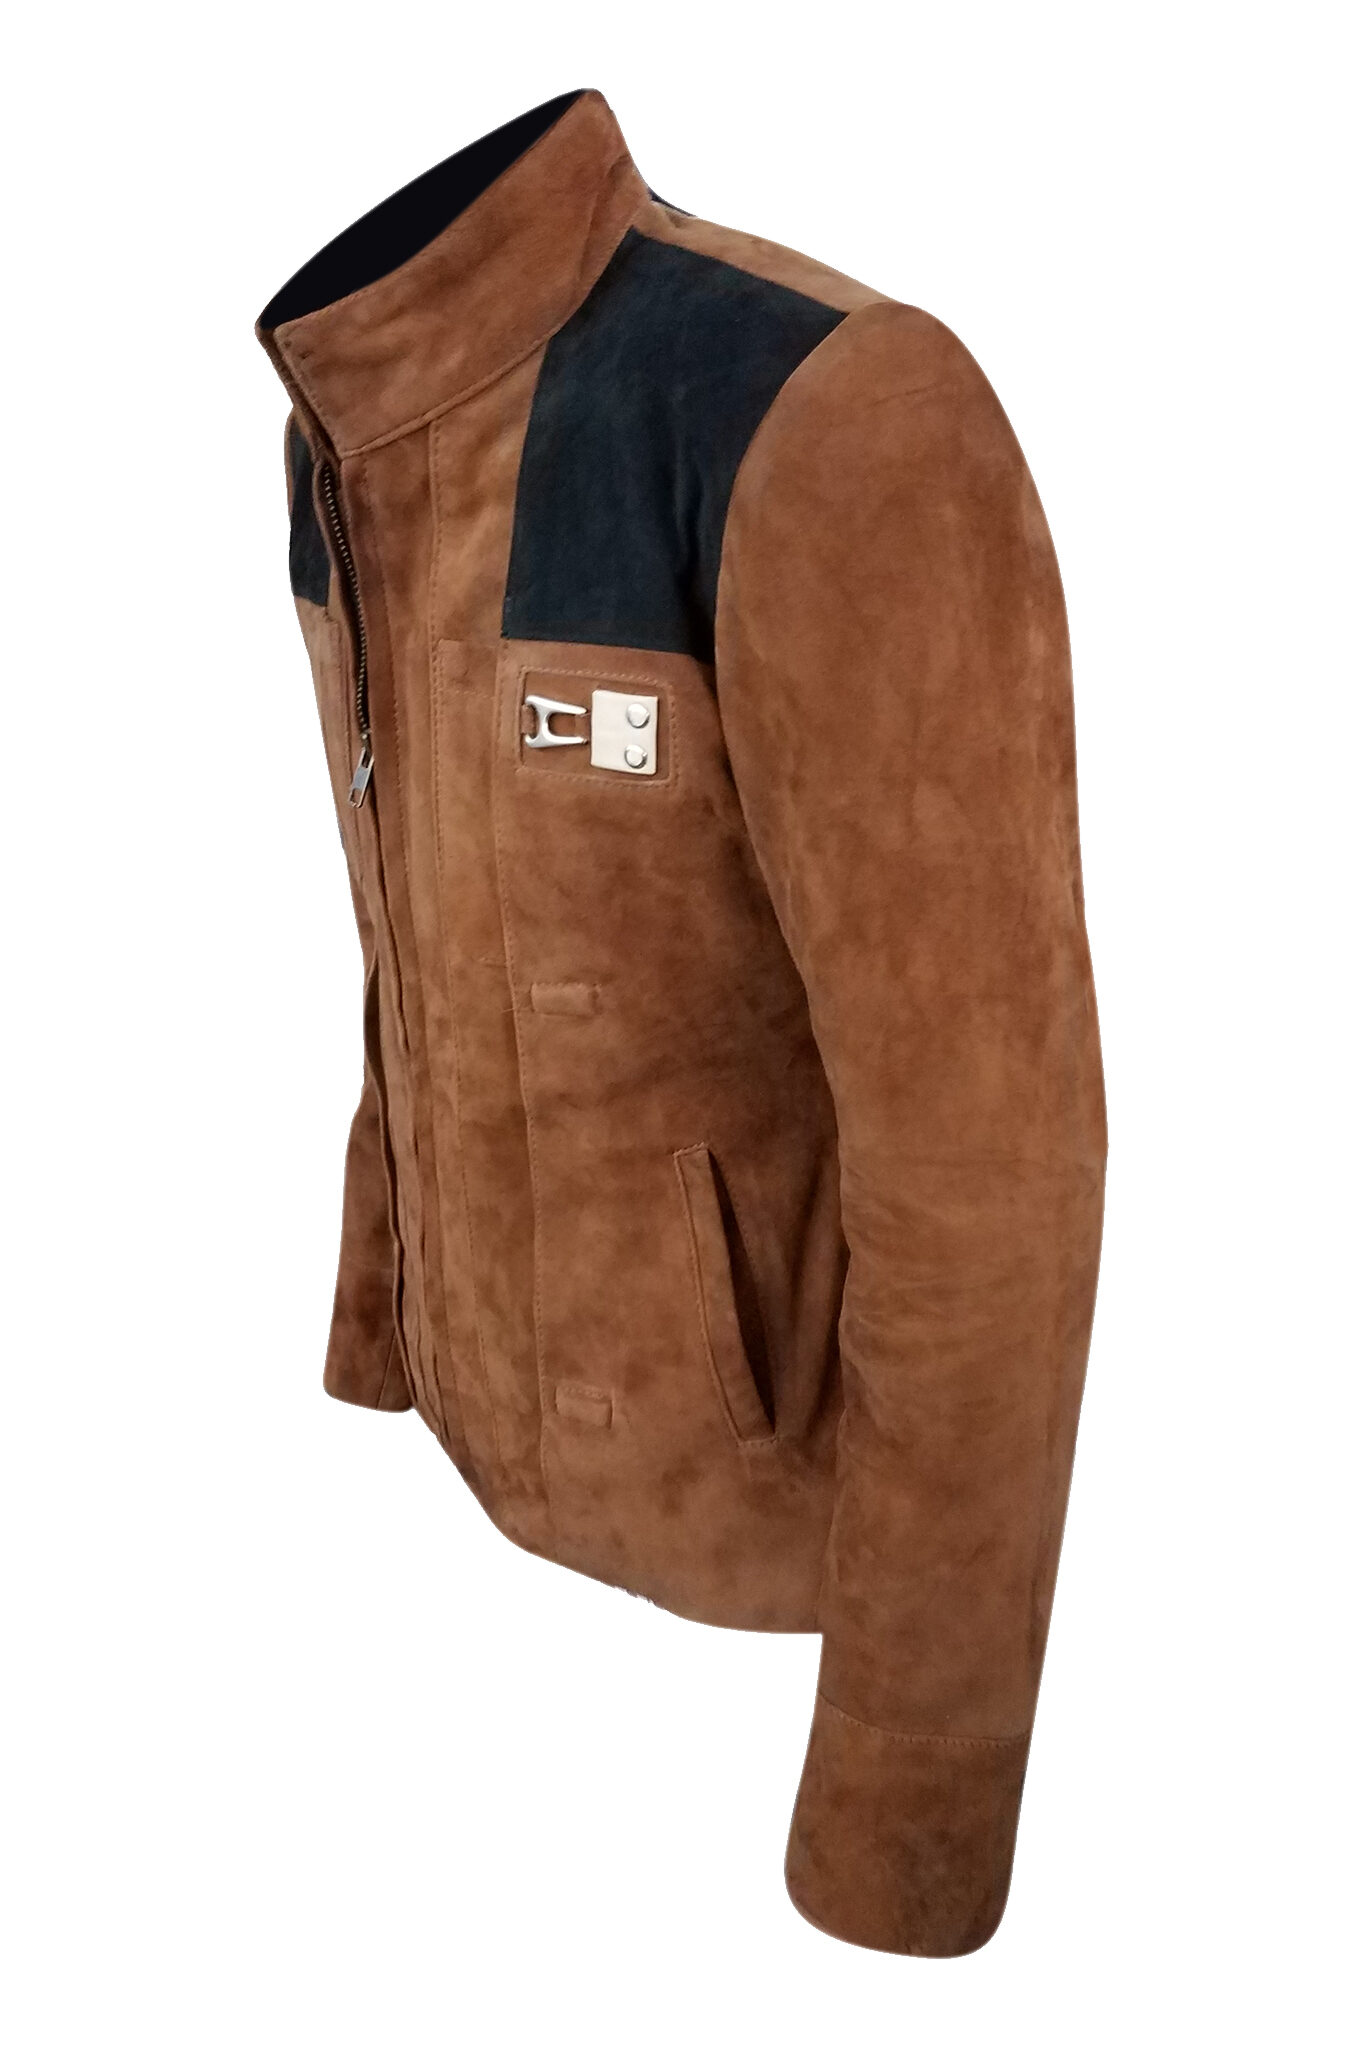 Suede Leather Han Solo Jacket